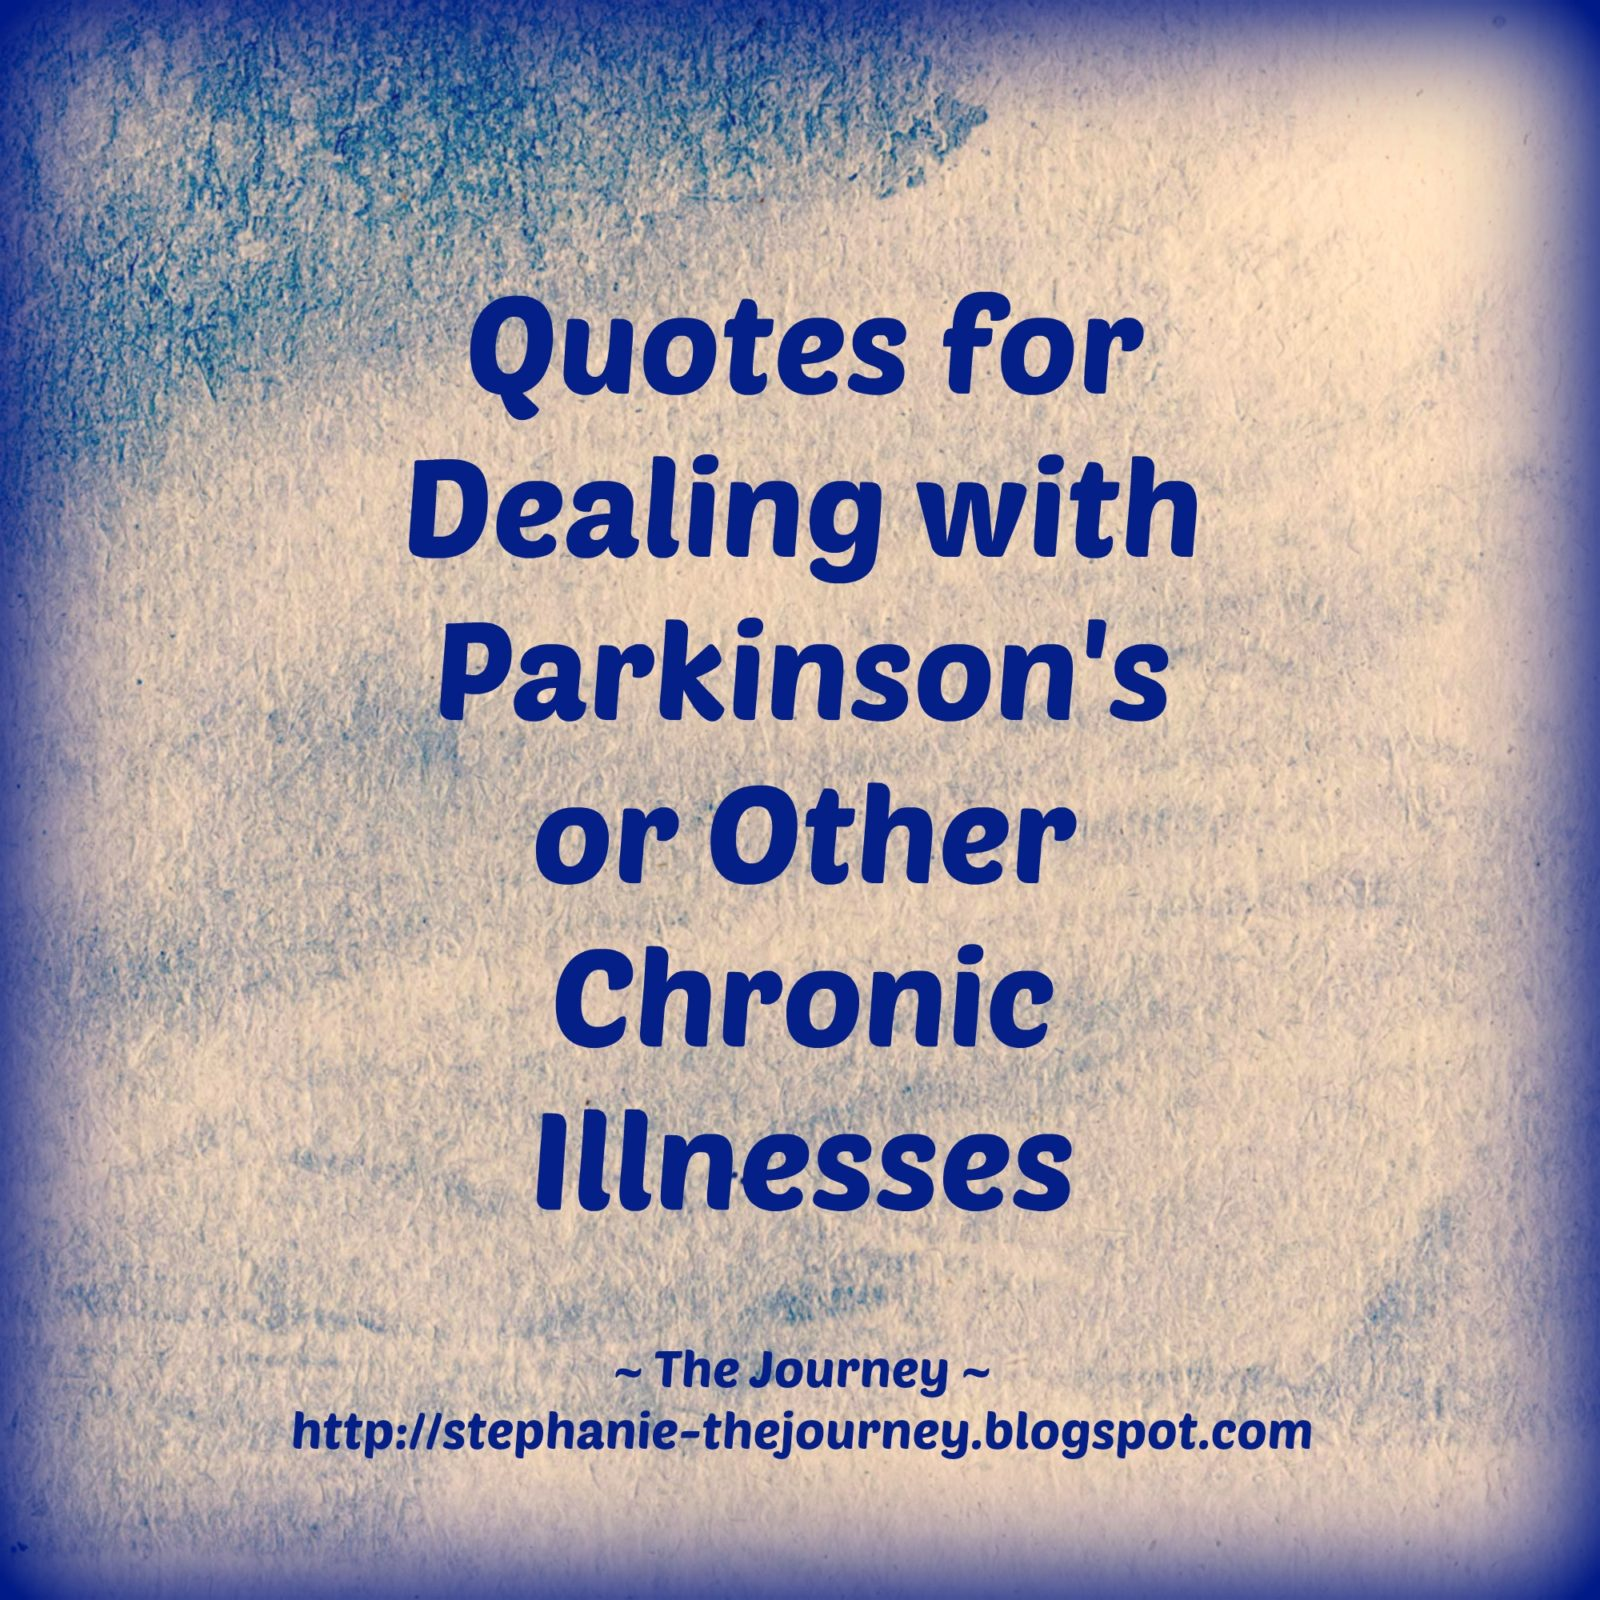 Quotes Journey Quotes For Dealing With Parkinson's Or Other Chronic Illnesses